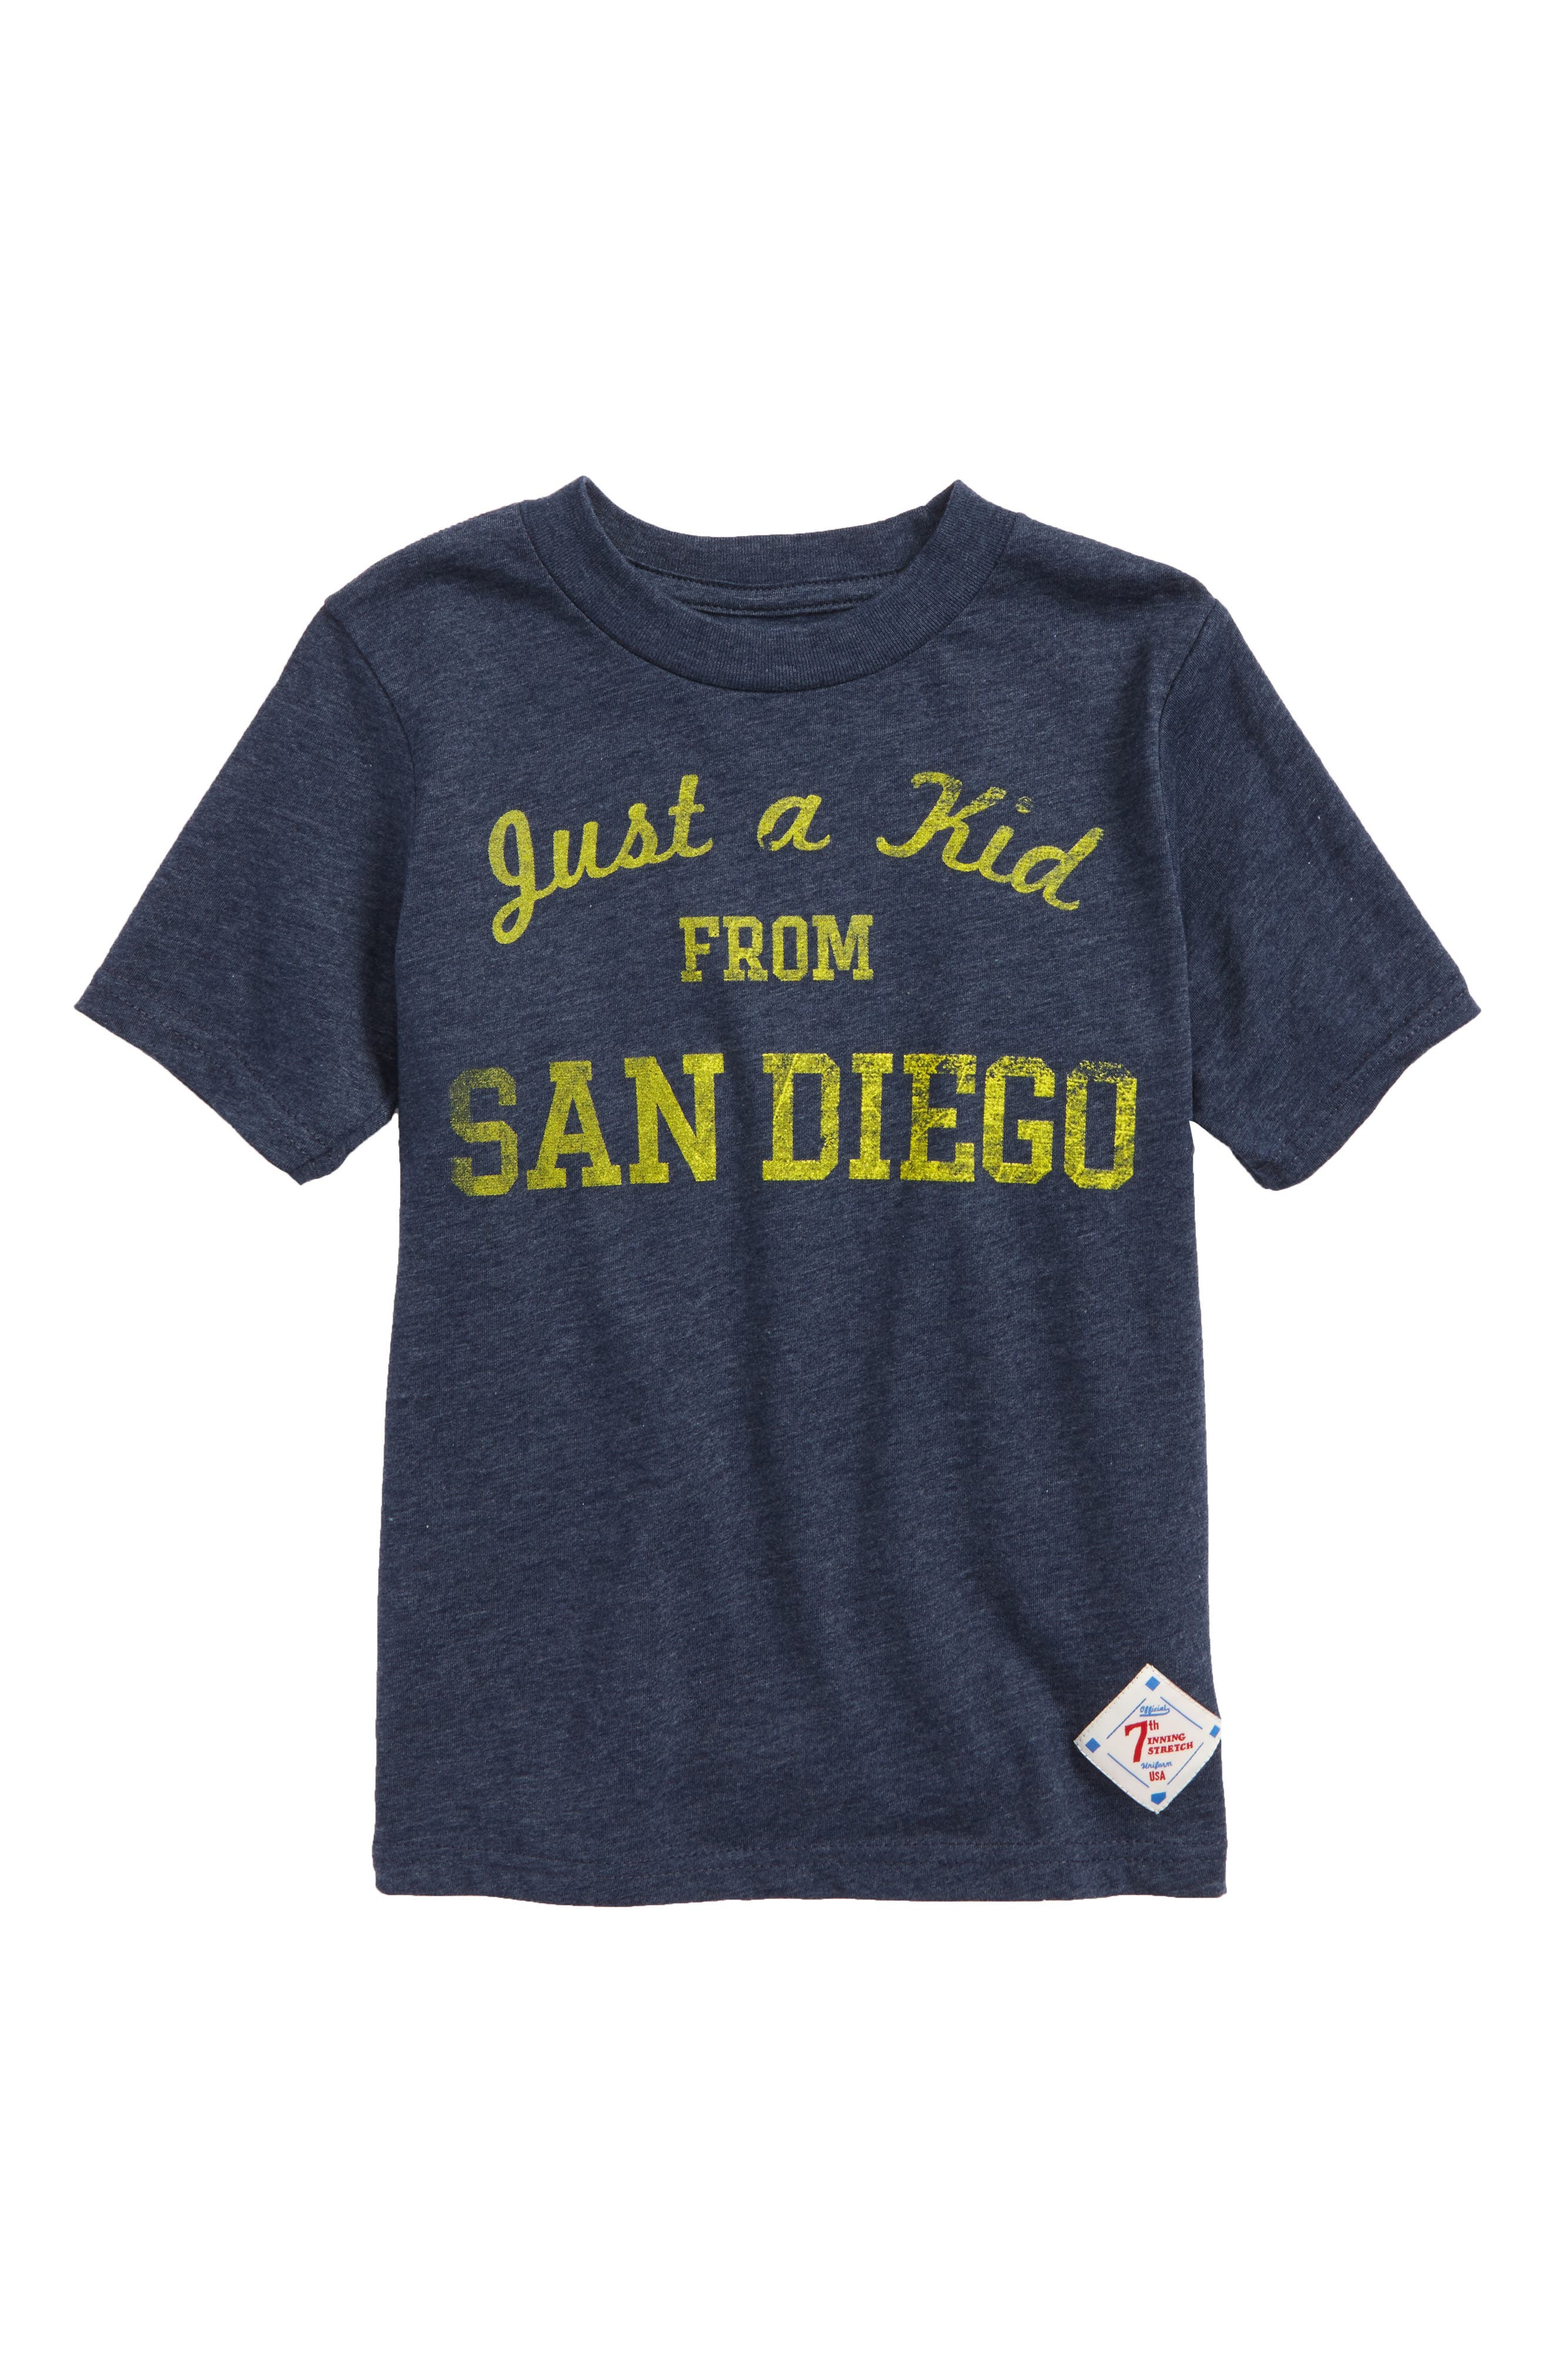 Just a Kid from San Diego Graphic T-Shirt,                         Main,                         color,